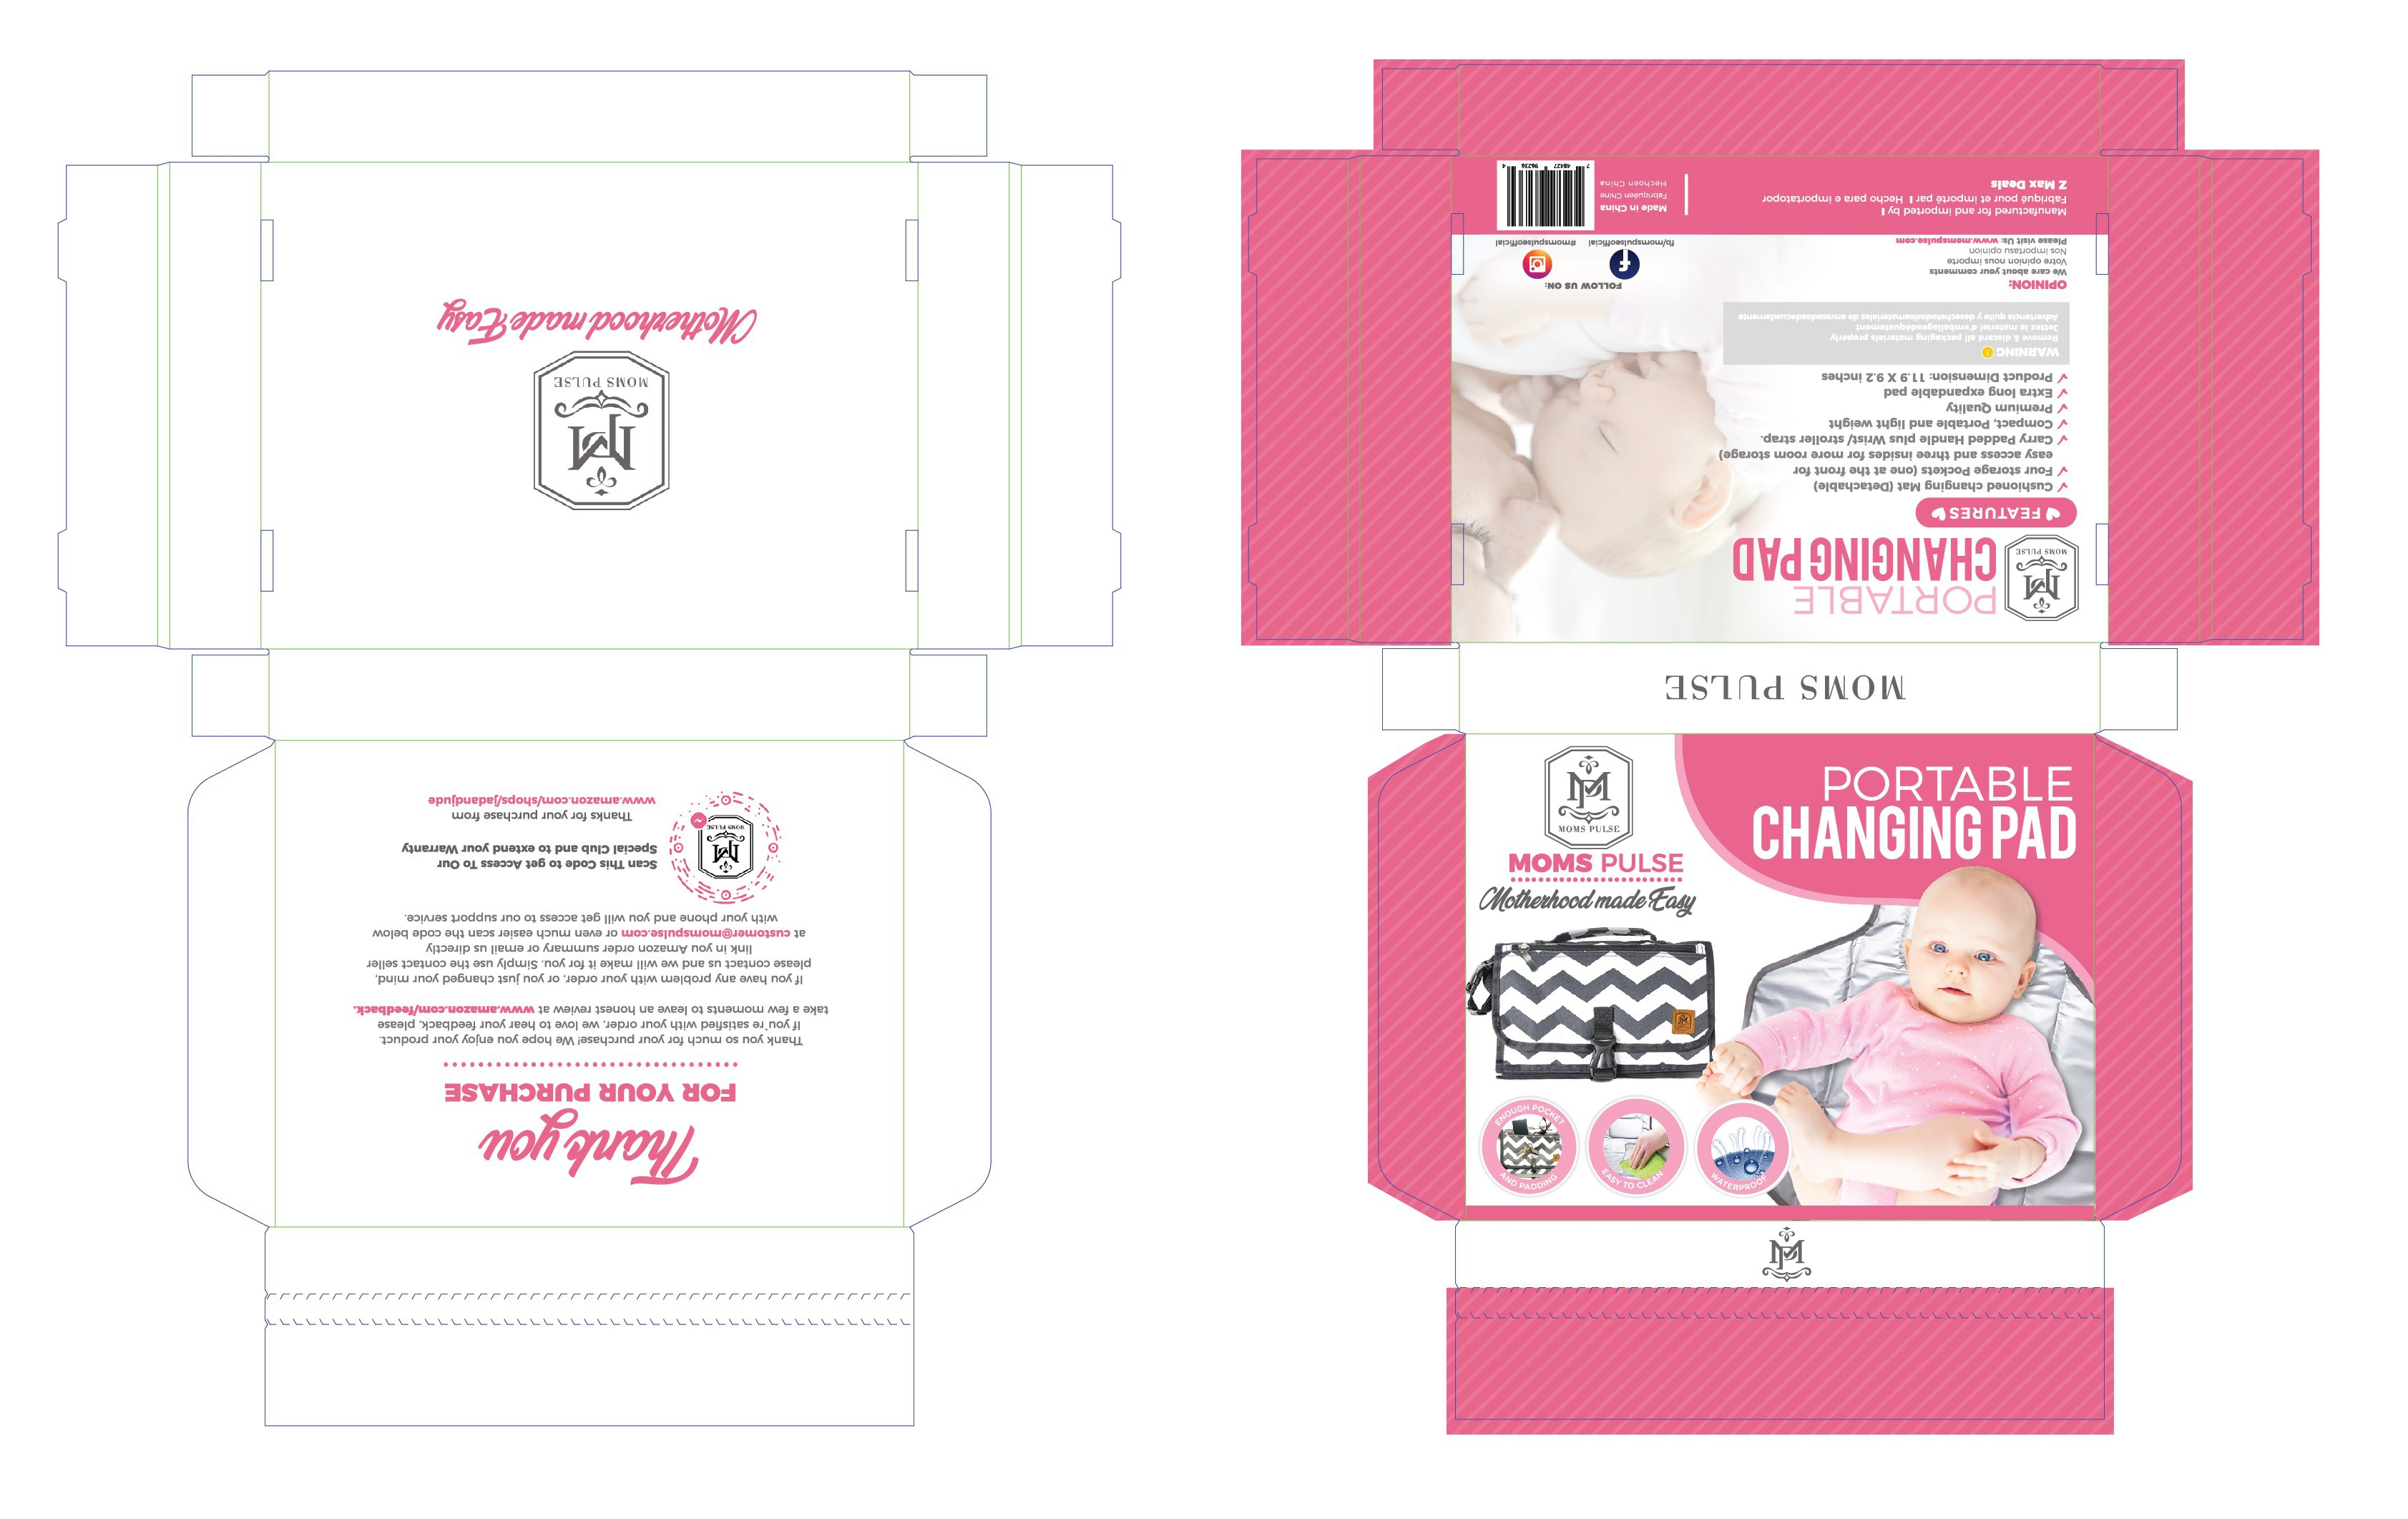 Portable Changing Pad Packaging